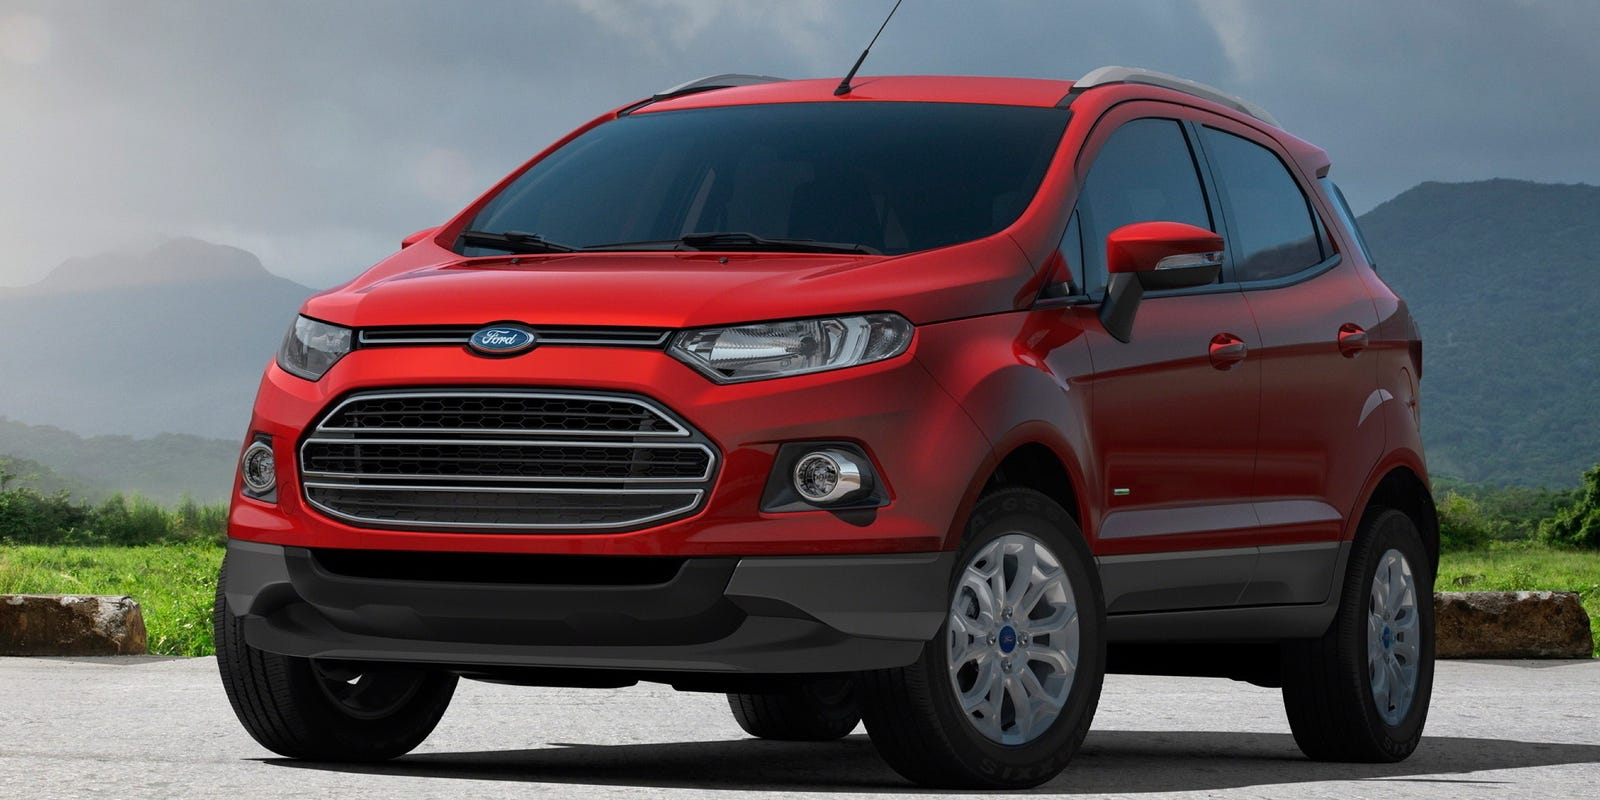 Ford Motor Company Stock Quote Ford Earns $1.2B In Q4 $5.7B In 2012 Big Europe Loss